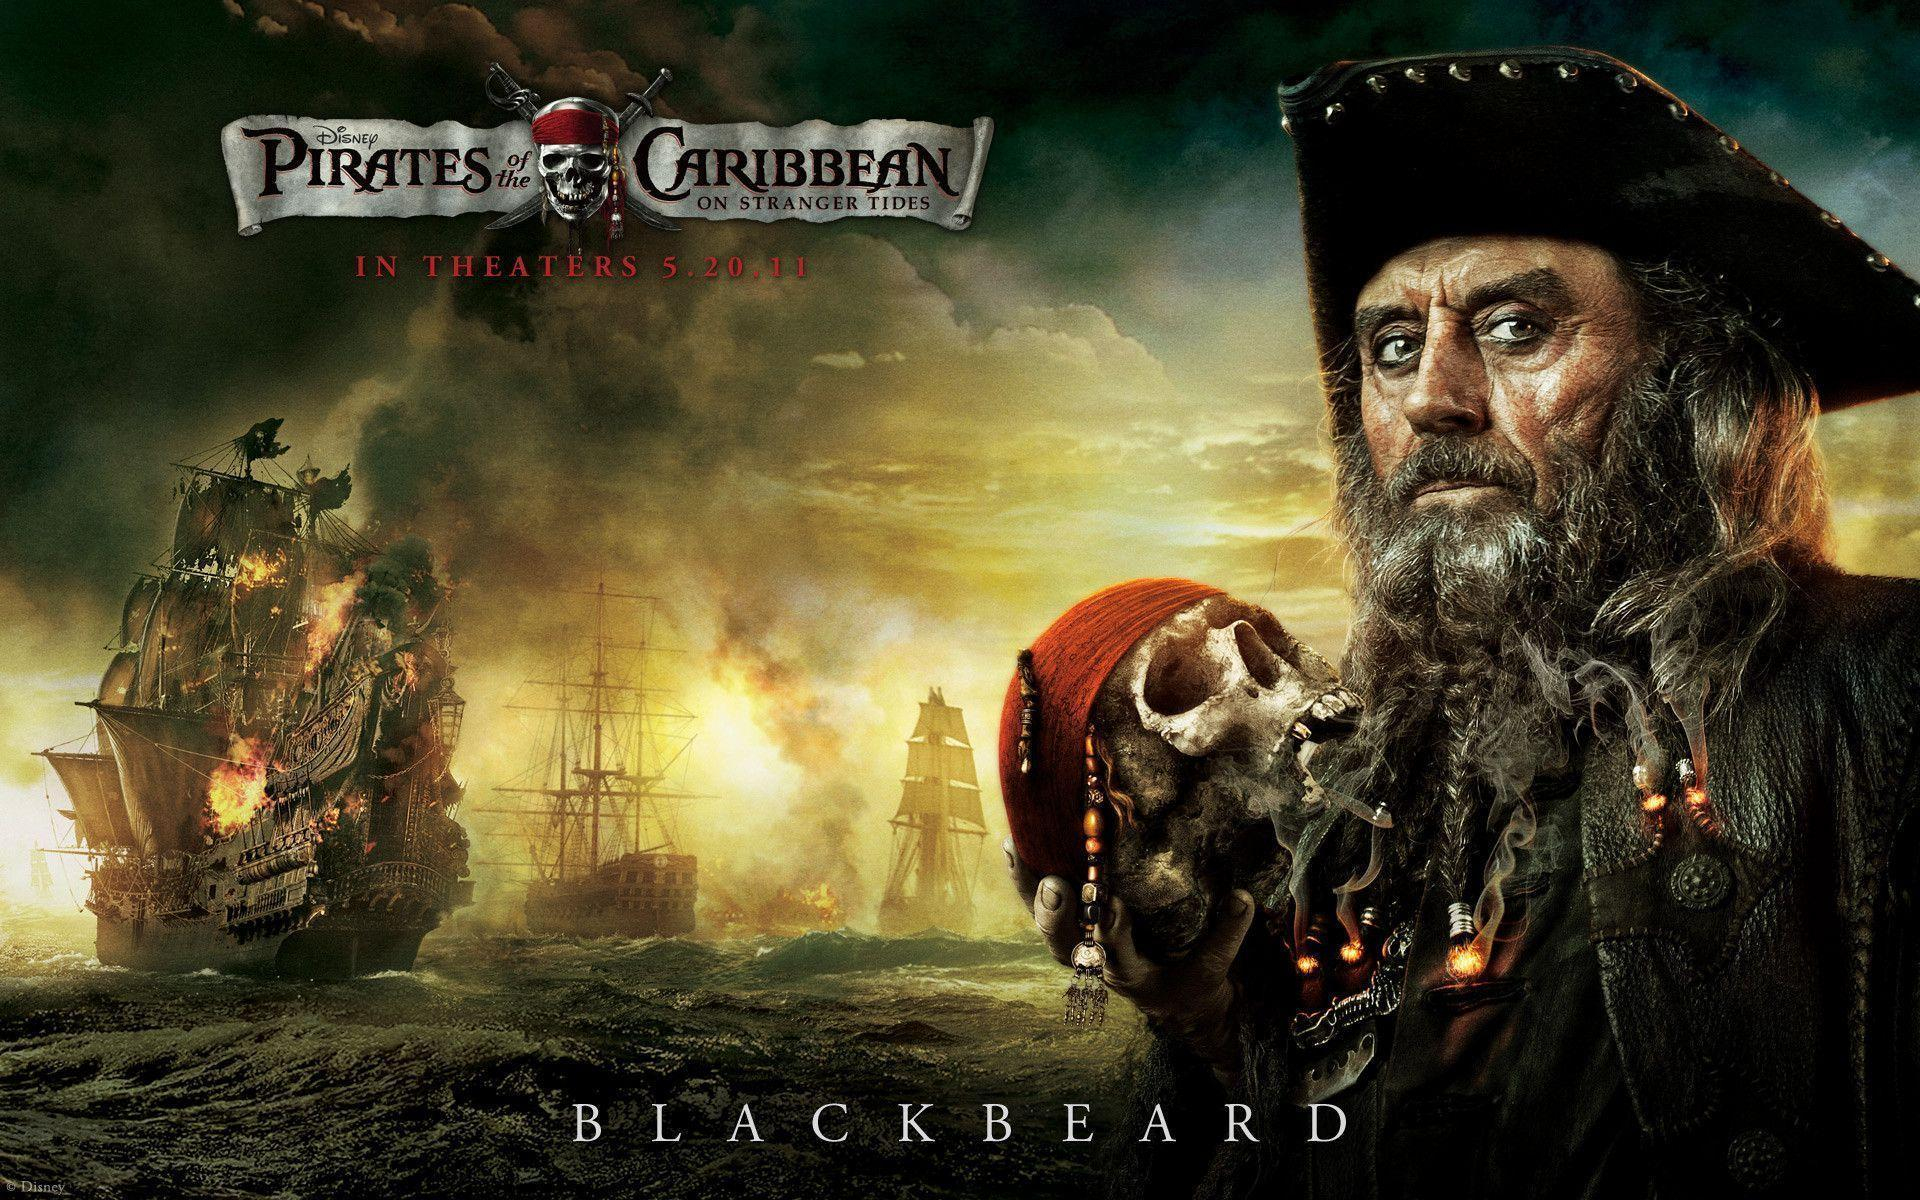 Blackbeard from Pirates of the Caribbean Desktop Wallpapers